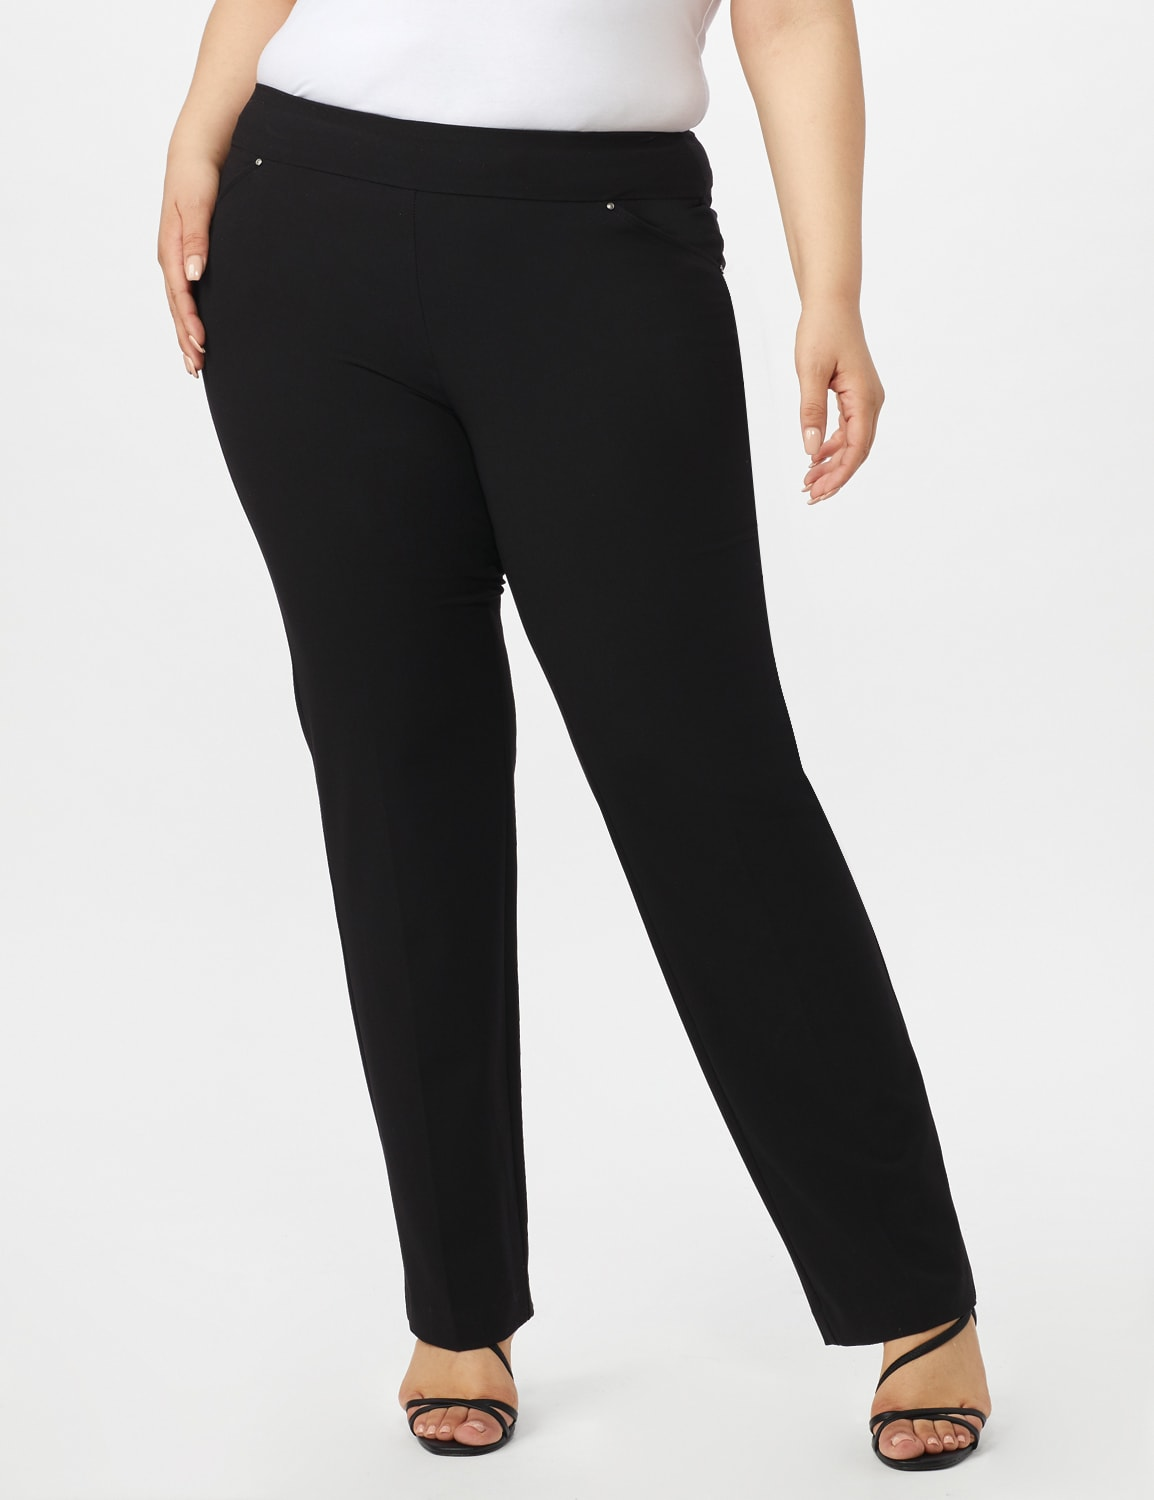 Roz & Ali Plus Secret Agent Tummy Control Pants Cateye Rivets - Average Length - Plus - Black - Front